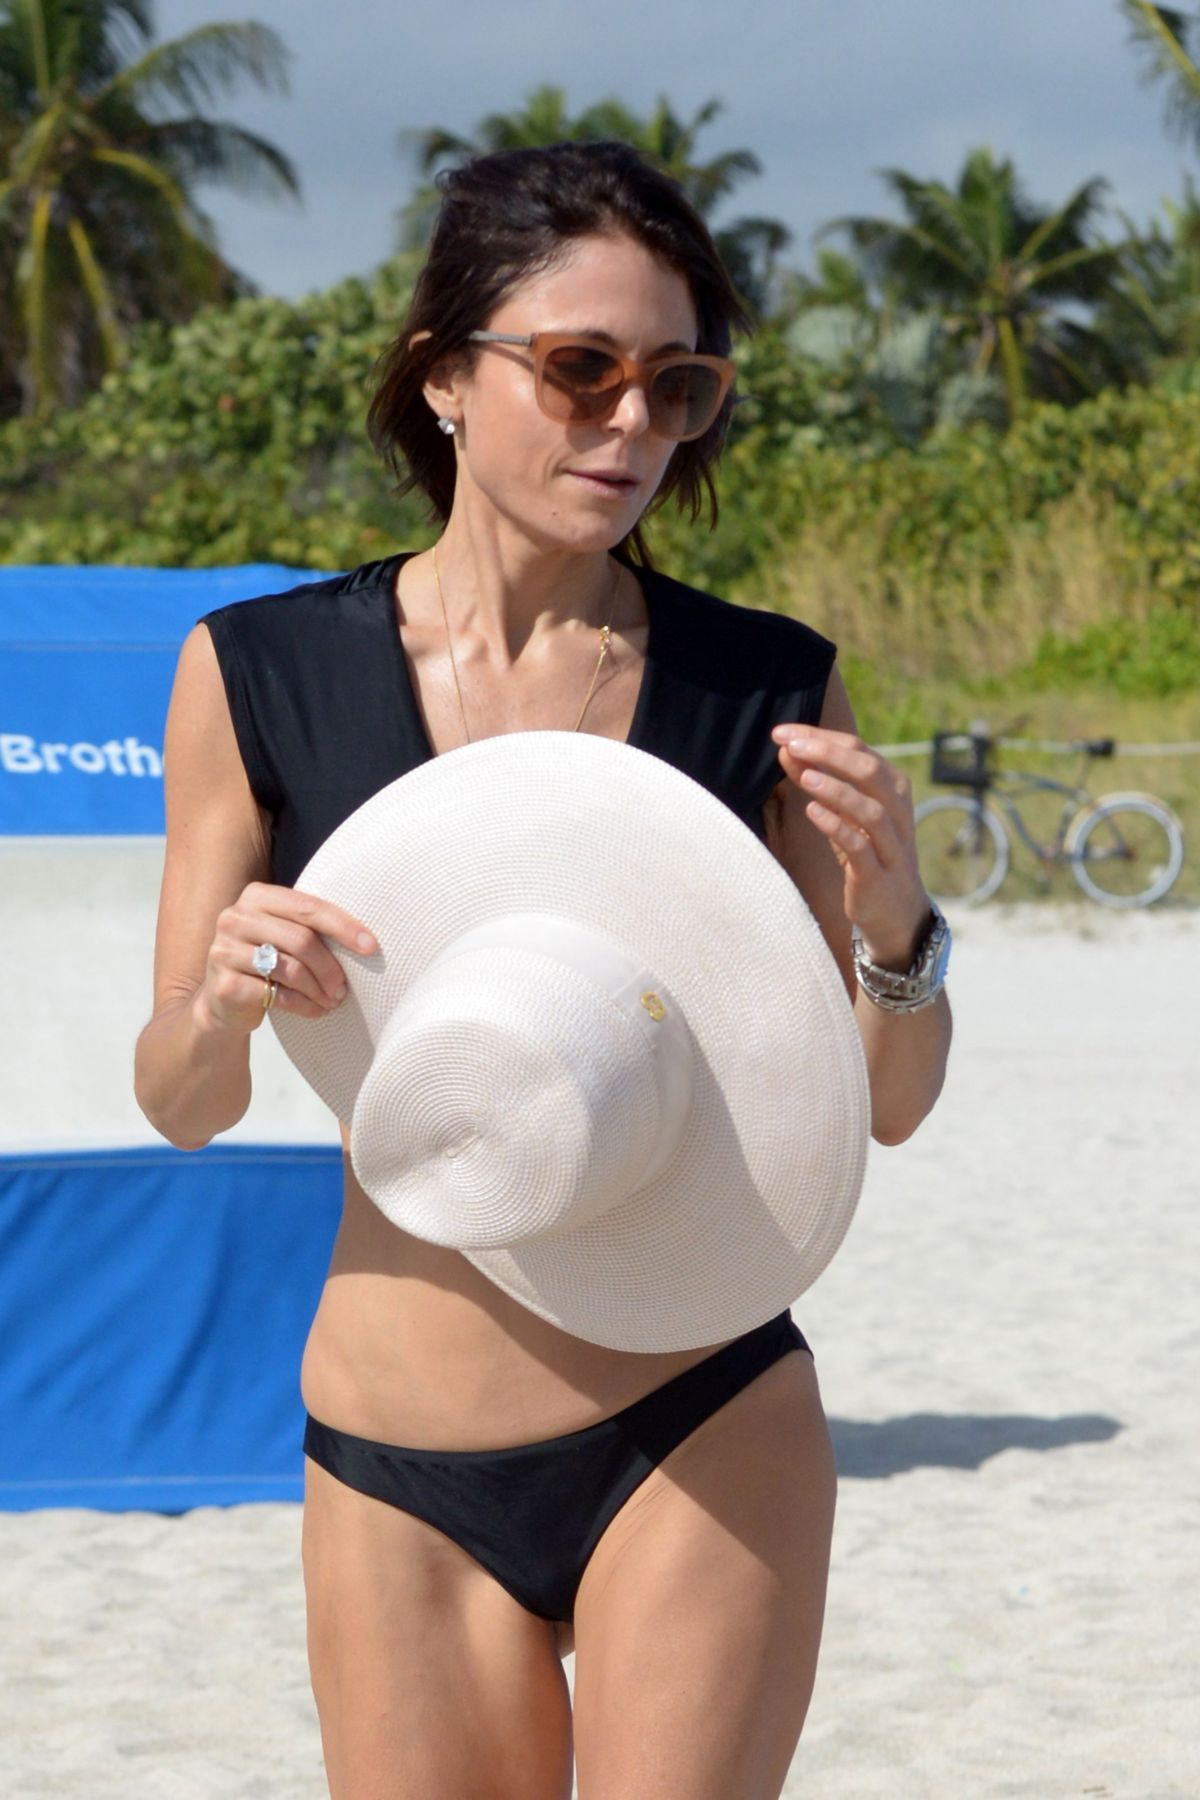 BETHENNY FRANKEL in Bikini on the Beach in Miami 12/05/2016   bethenny-frankel-in-bikini-on-the-beach-in-miami-12-05-2016_31